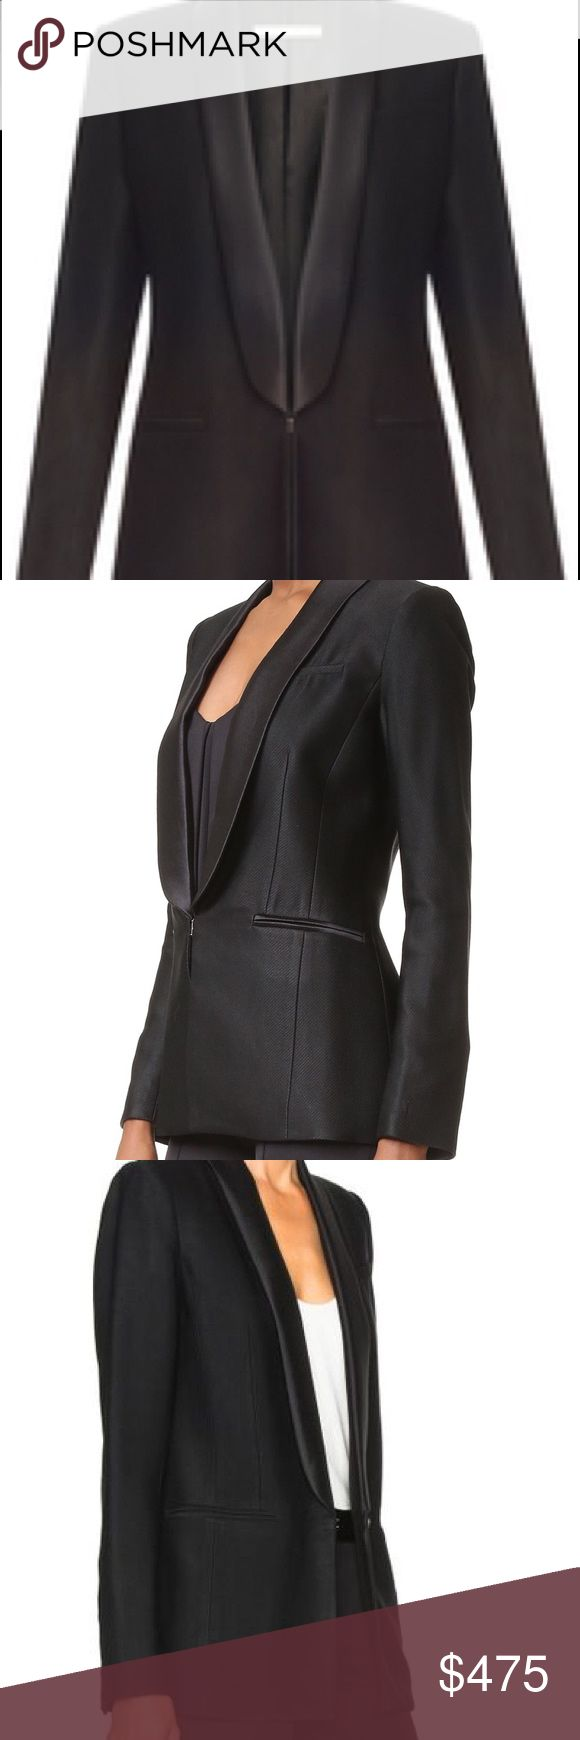 Veronica Beard Black Glastonbury Tuxedo Jacket sz8 Impeccable condition-listing as NWT because this jacket was worn one time for no more than 45 minutes. Beautiful and sophisticated.  Appropriate for all year wear.  Hook closure at front.  Buttoned cuffs.  Shawl collar.  3 pockets.  Purchased on VB website at full retail price $695.  Tags/receipt/extra buttons all included.  The back vent is still sewn so you can see that this jacket has not been worn out of my house! 😊 Veronica Beard…